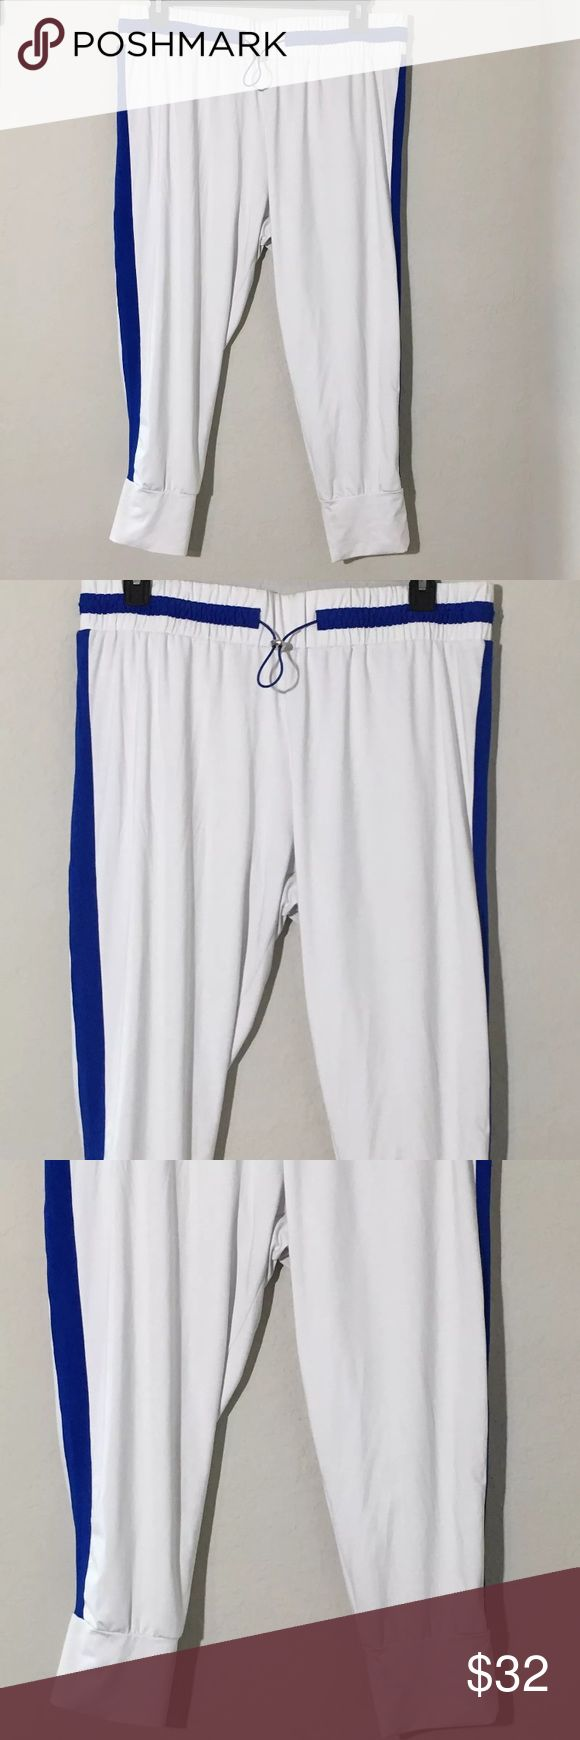 """Fabletics Victoria Cropped Pants White Blue XXL Women's Fabletics Victoria cropped pants whit with blue stripe down side. Sz XXL SOLD OUT online! Measurements 18"""" waist laying flat, 25"""" inseam. Excellent condition slight piling on inner thighs See Pictures Fabletics Pants Ankle & Cropped"""